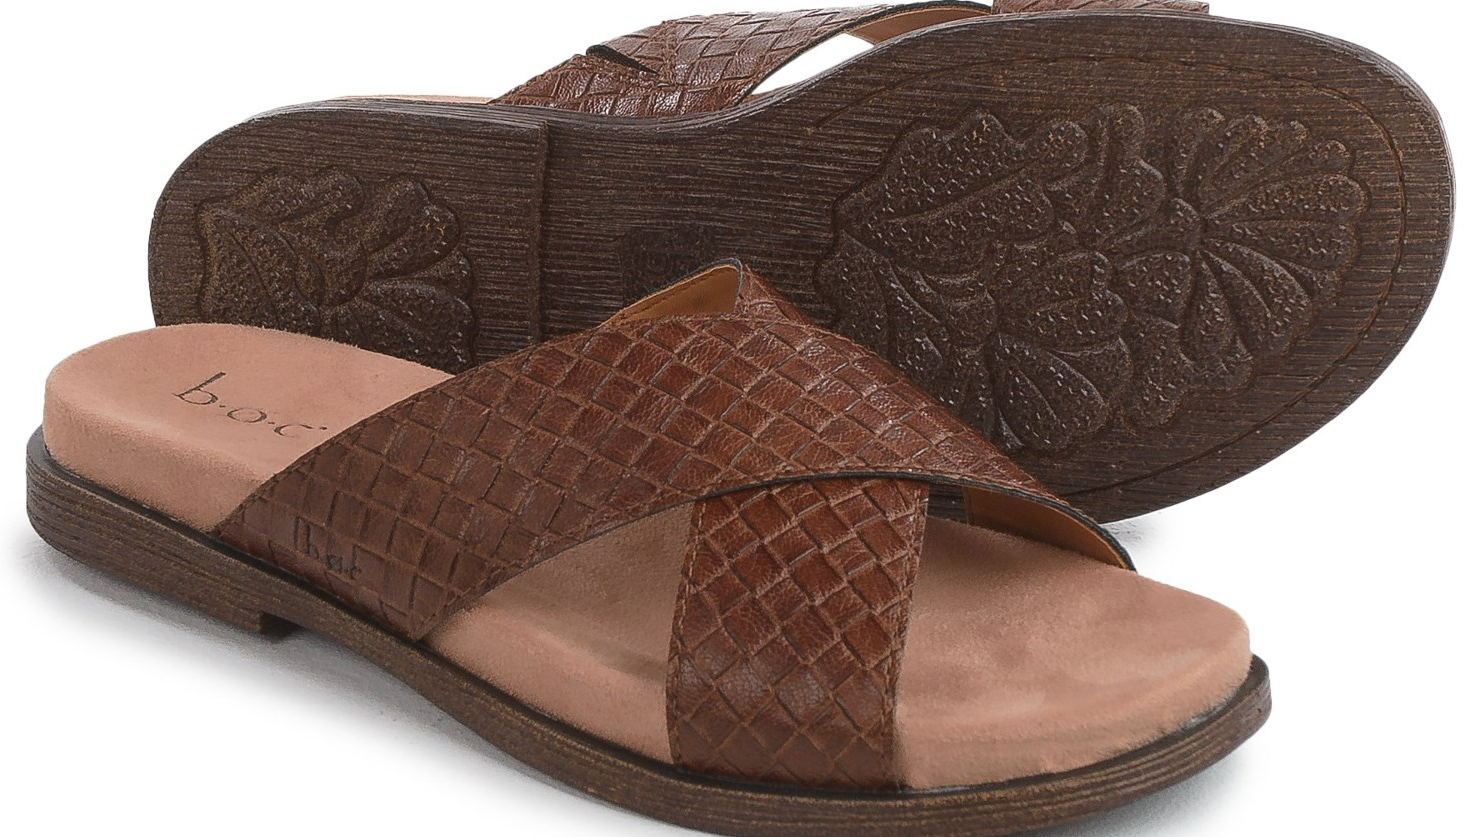 NEW BORN B.O.C LAZIO BROWN SLIDE SANDALS WOMENS 6 FLATS Z33223  FREE SHIP